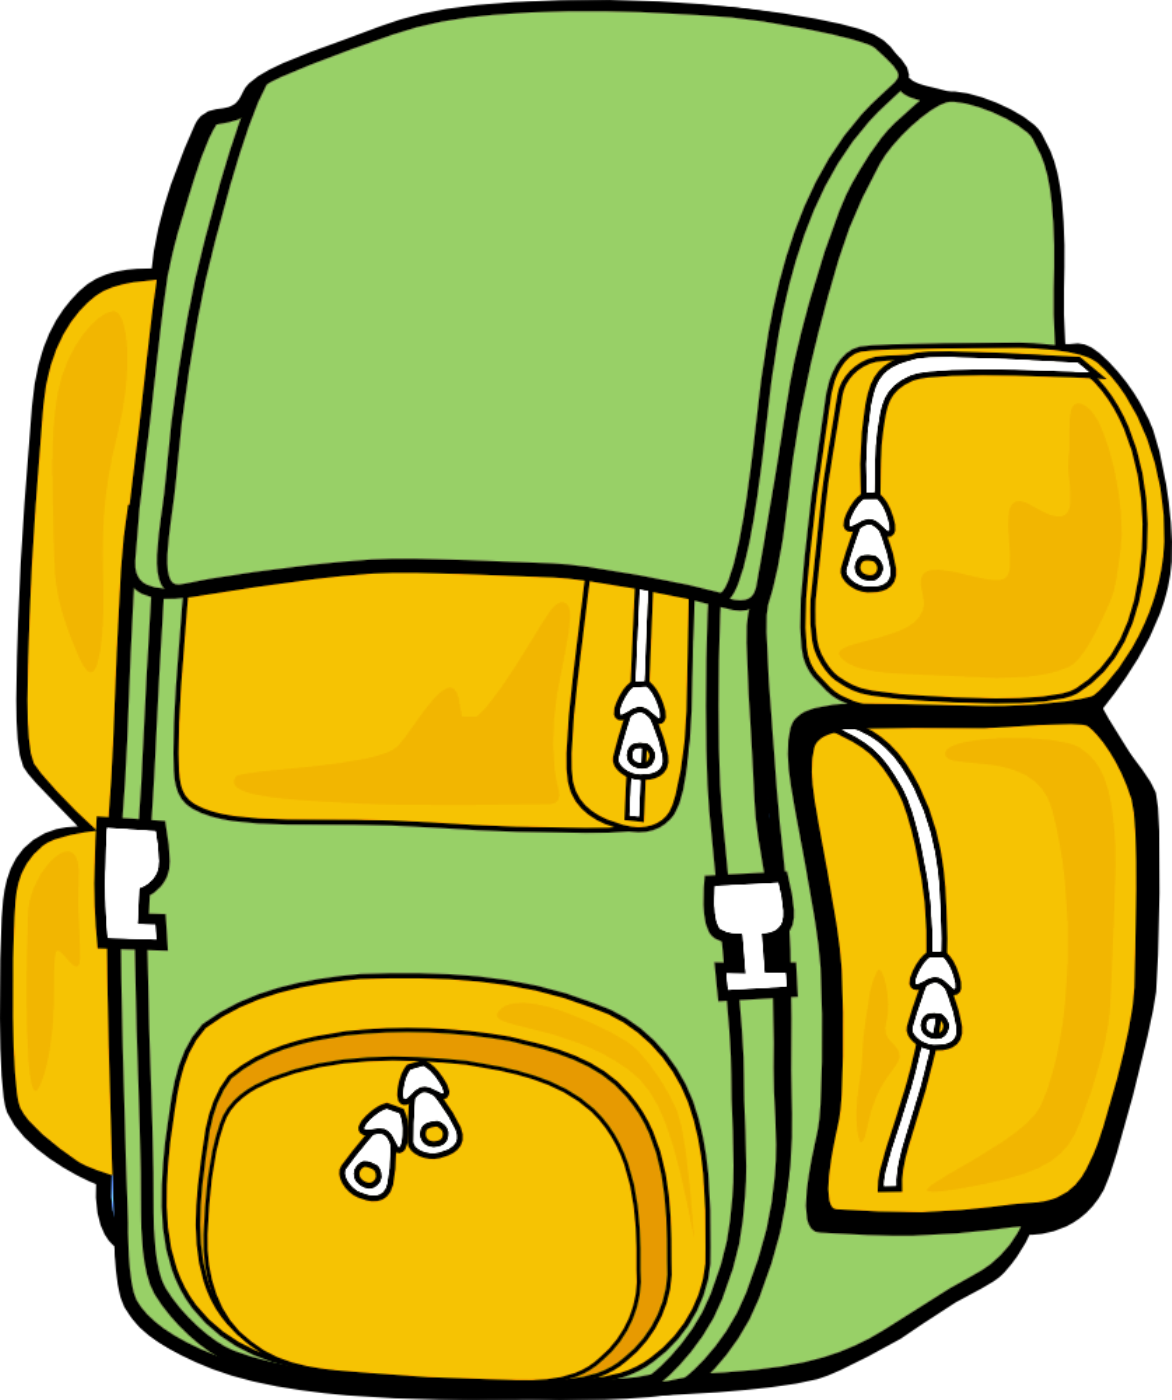 Luggage clipart animated. Backpack beautystars clipartix